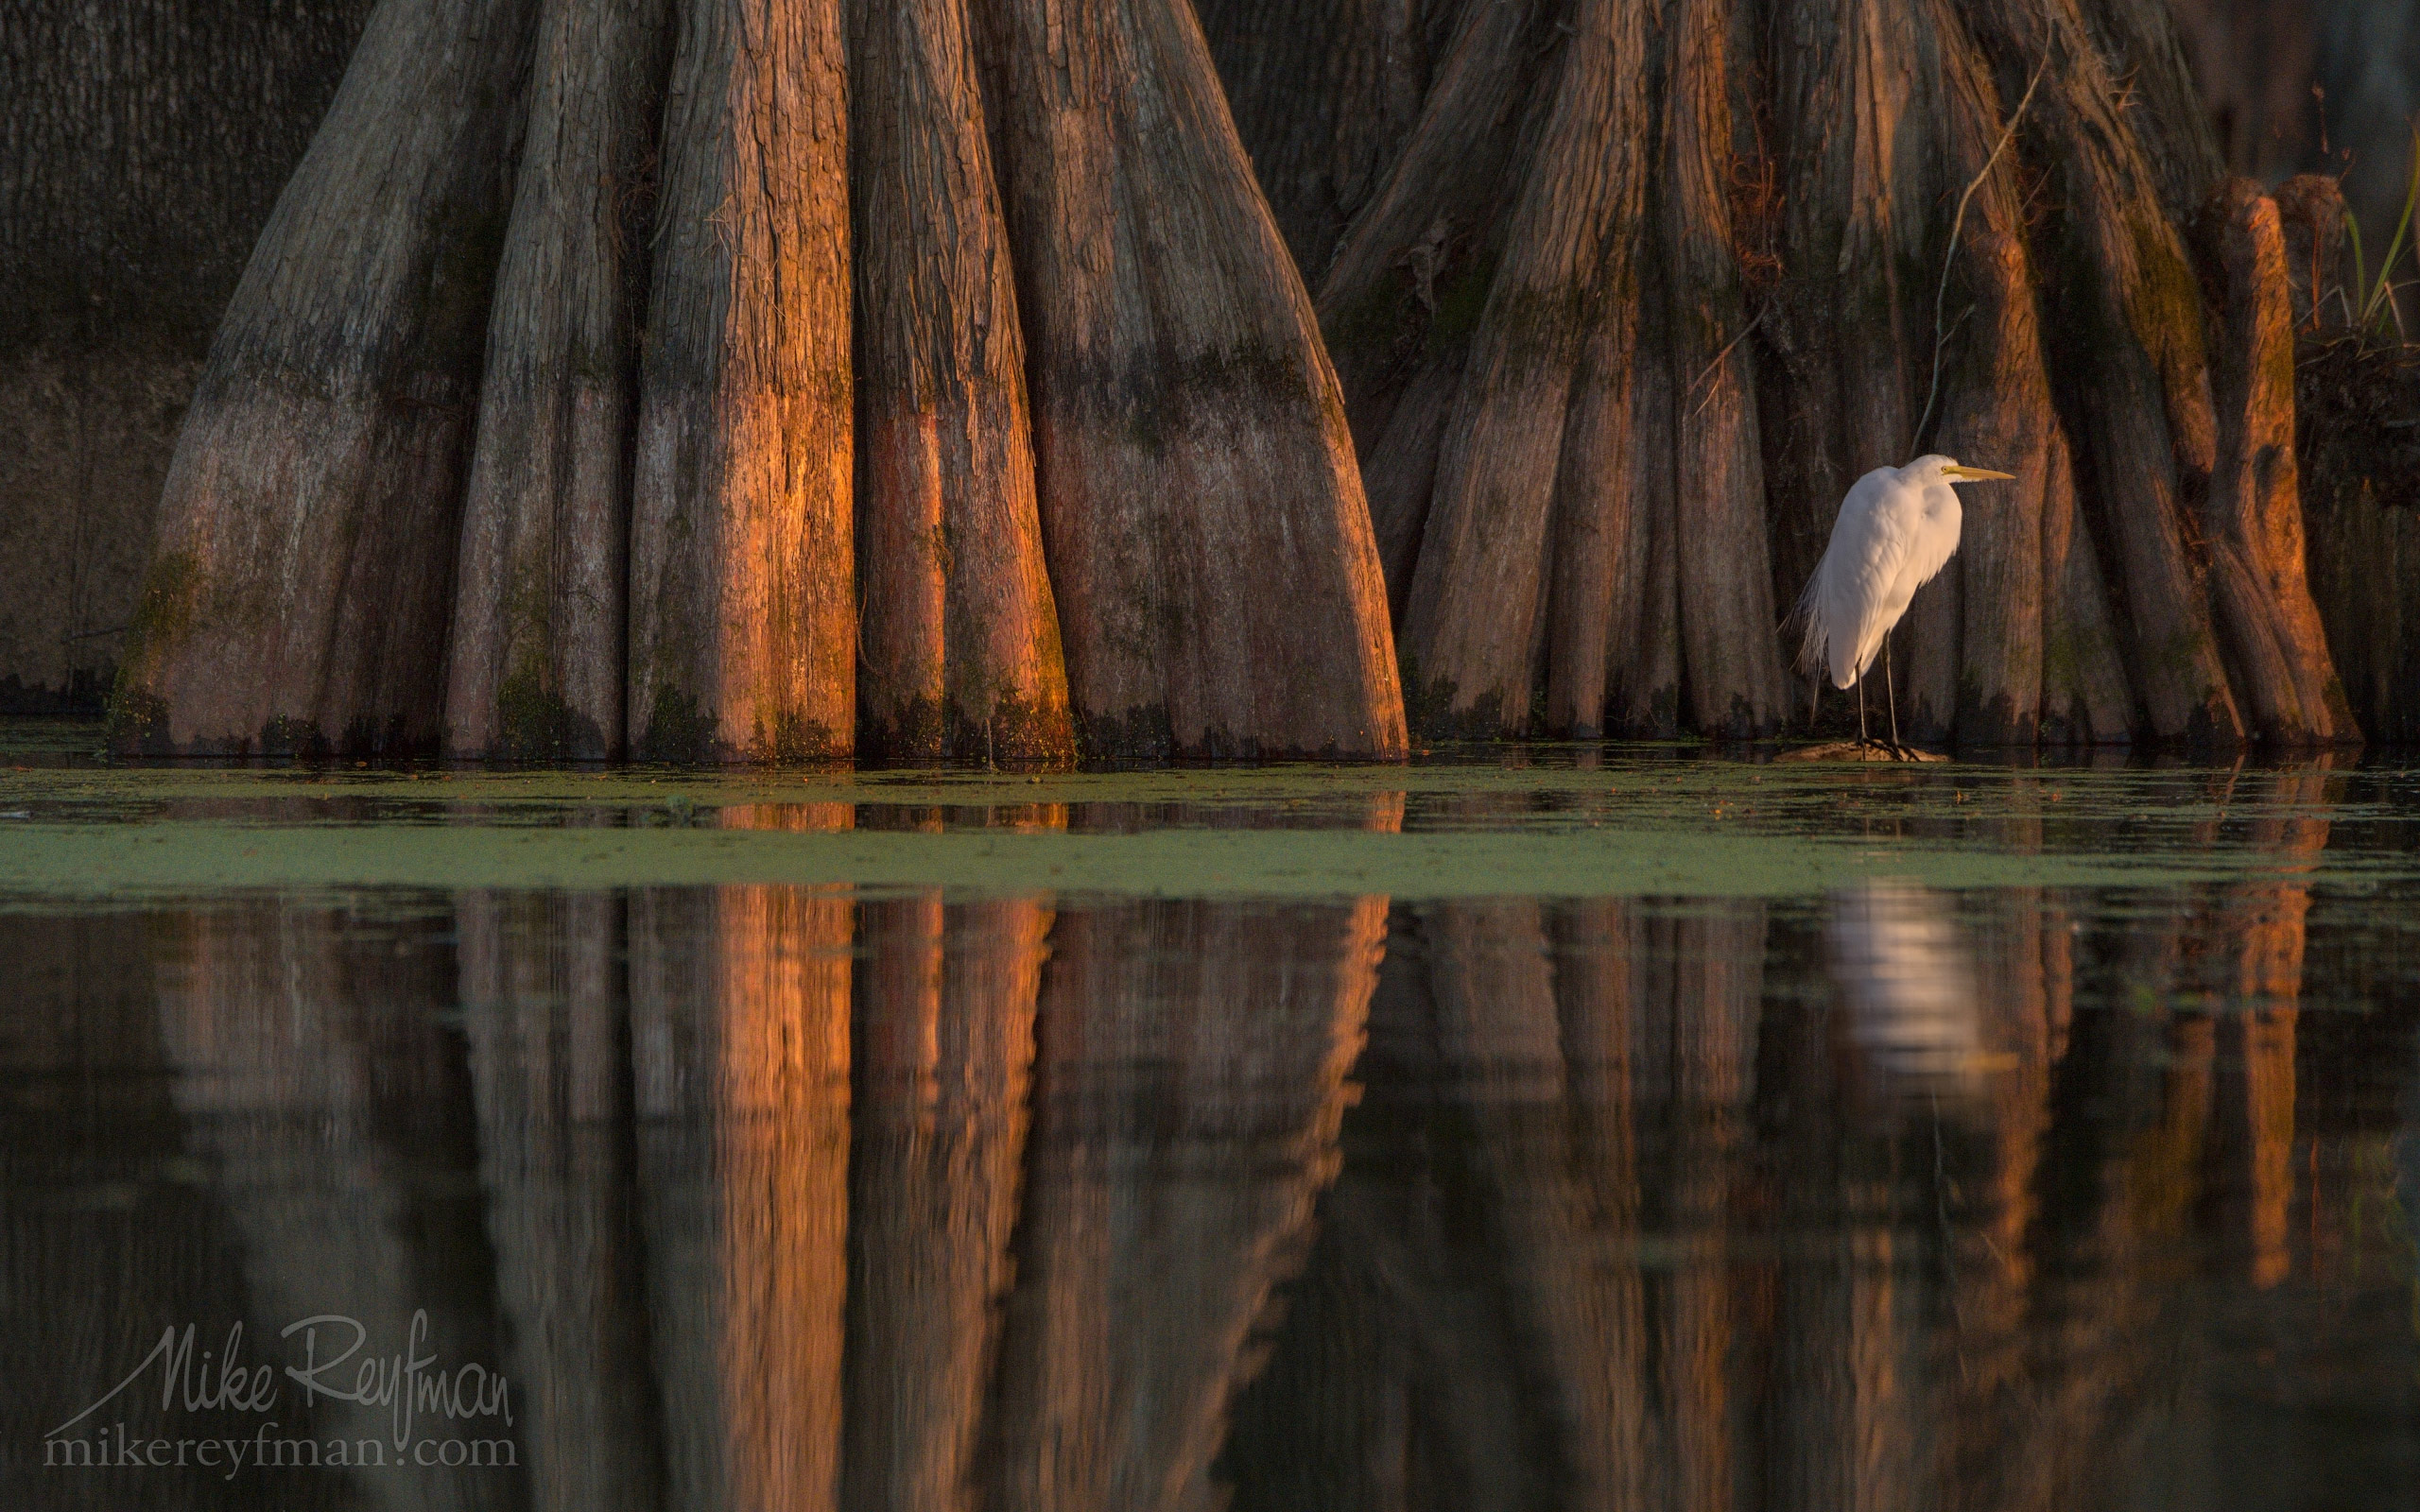 Great Egret with the buttressed trunks of Bald Cypress and Tupelo trees in the background. Lake Martin, Louisiana, US 073-LT1-50A4183.jpg - Bold Cypress and Tupelo Trees in the swamps of Atchafalaya River Basin. Caddo, Martin and Fousse Lakes. Texas/Louisiana, USA. - Mike Reyfman Photography